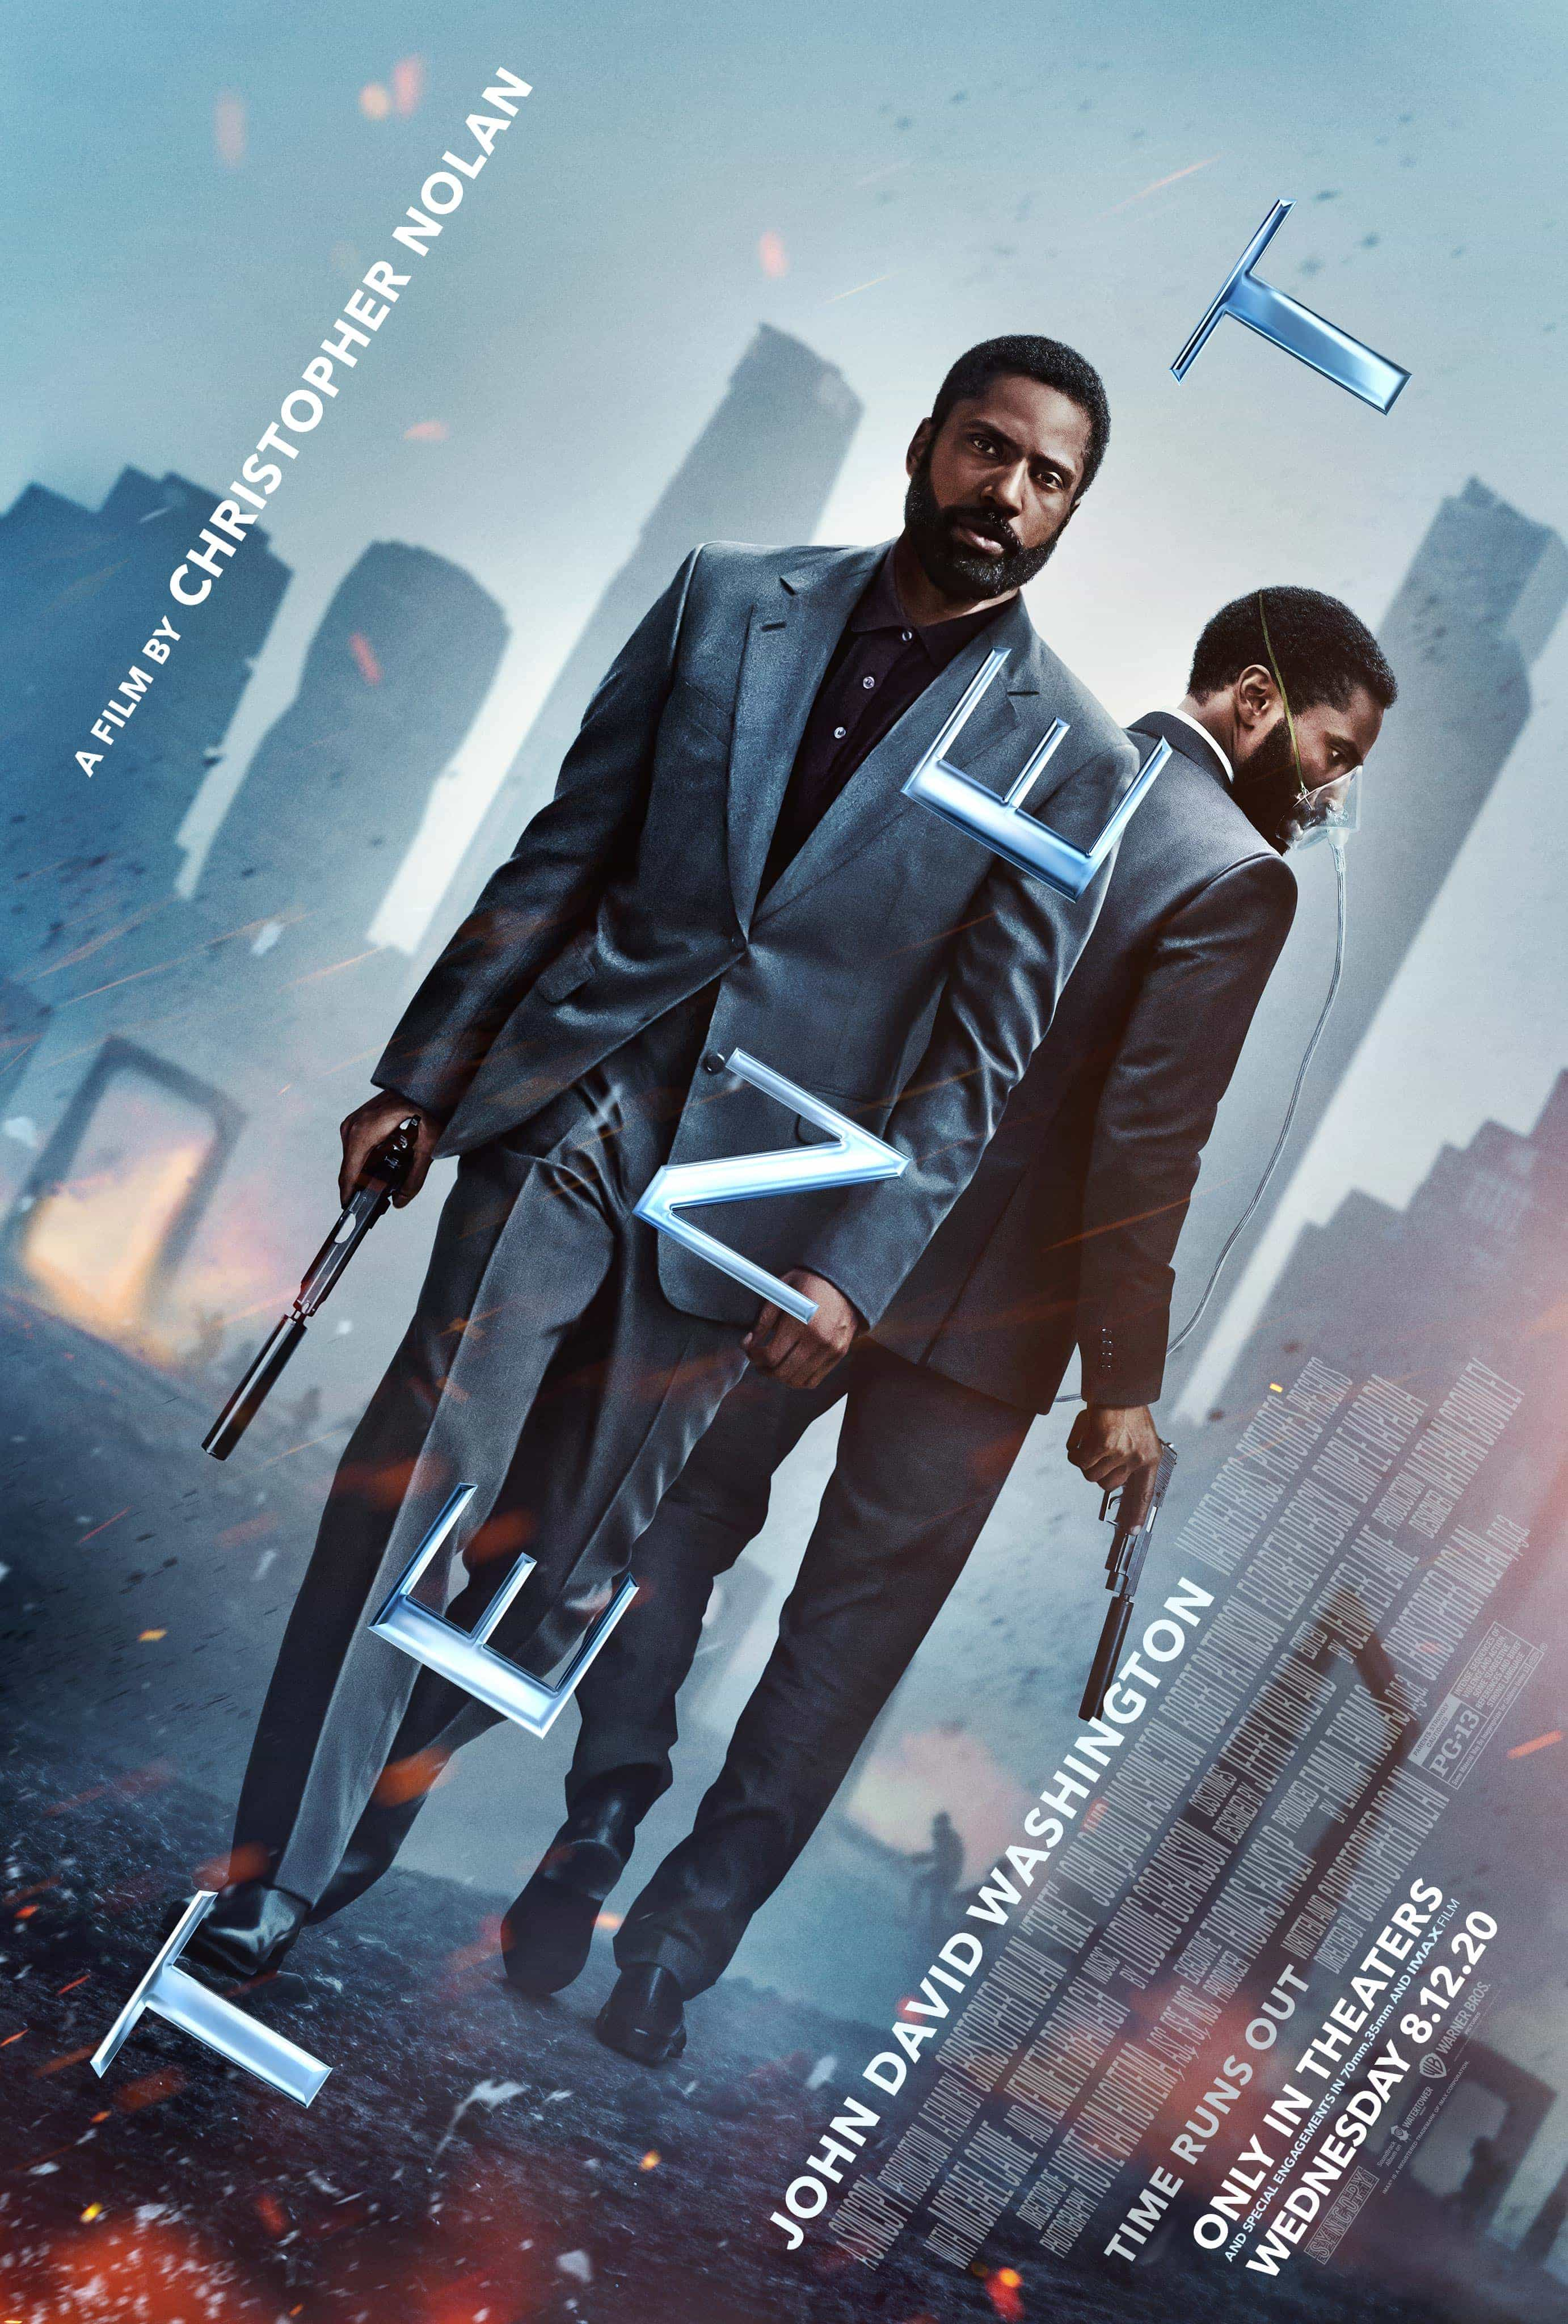 New poster release for Tenet starring John David Washington - movie release date 12th August 2020